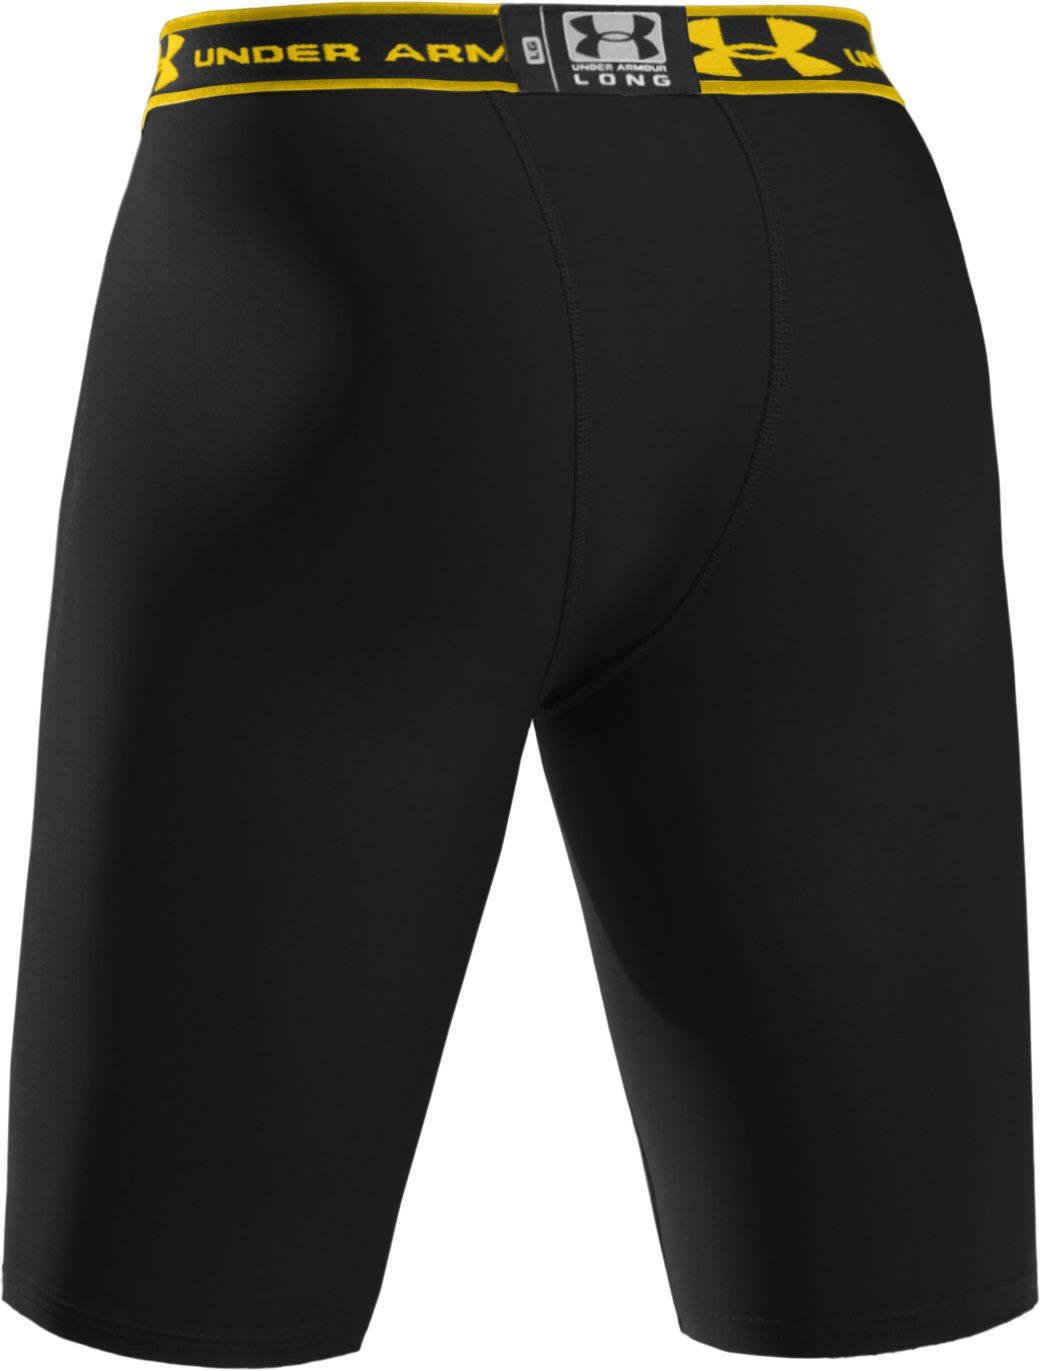 "Men's HeatGear® Compression 9"" Shorts, Black"